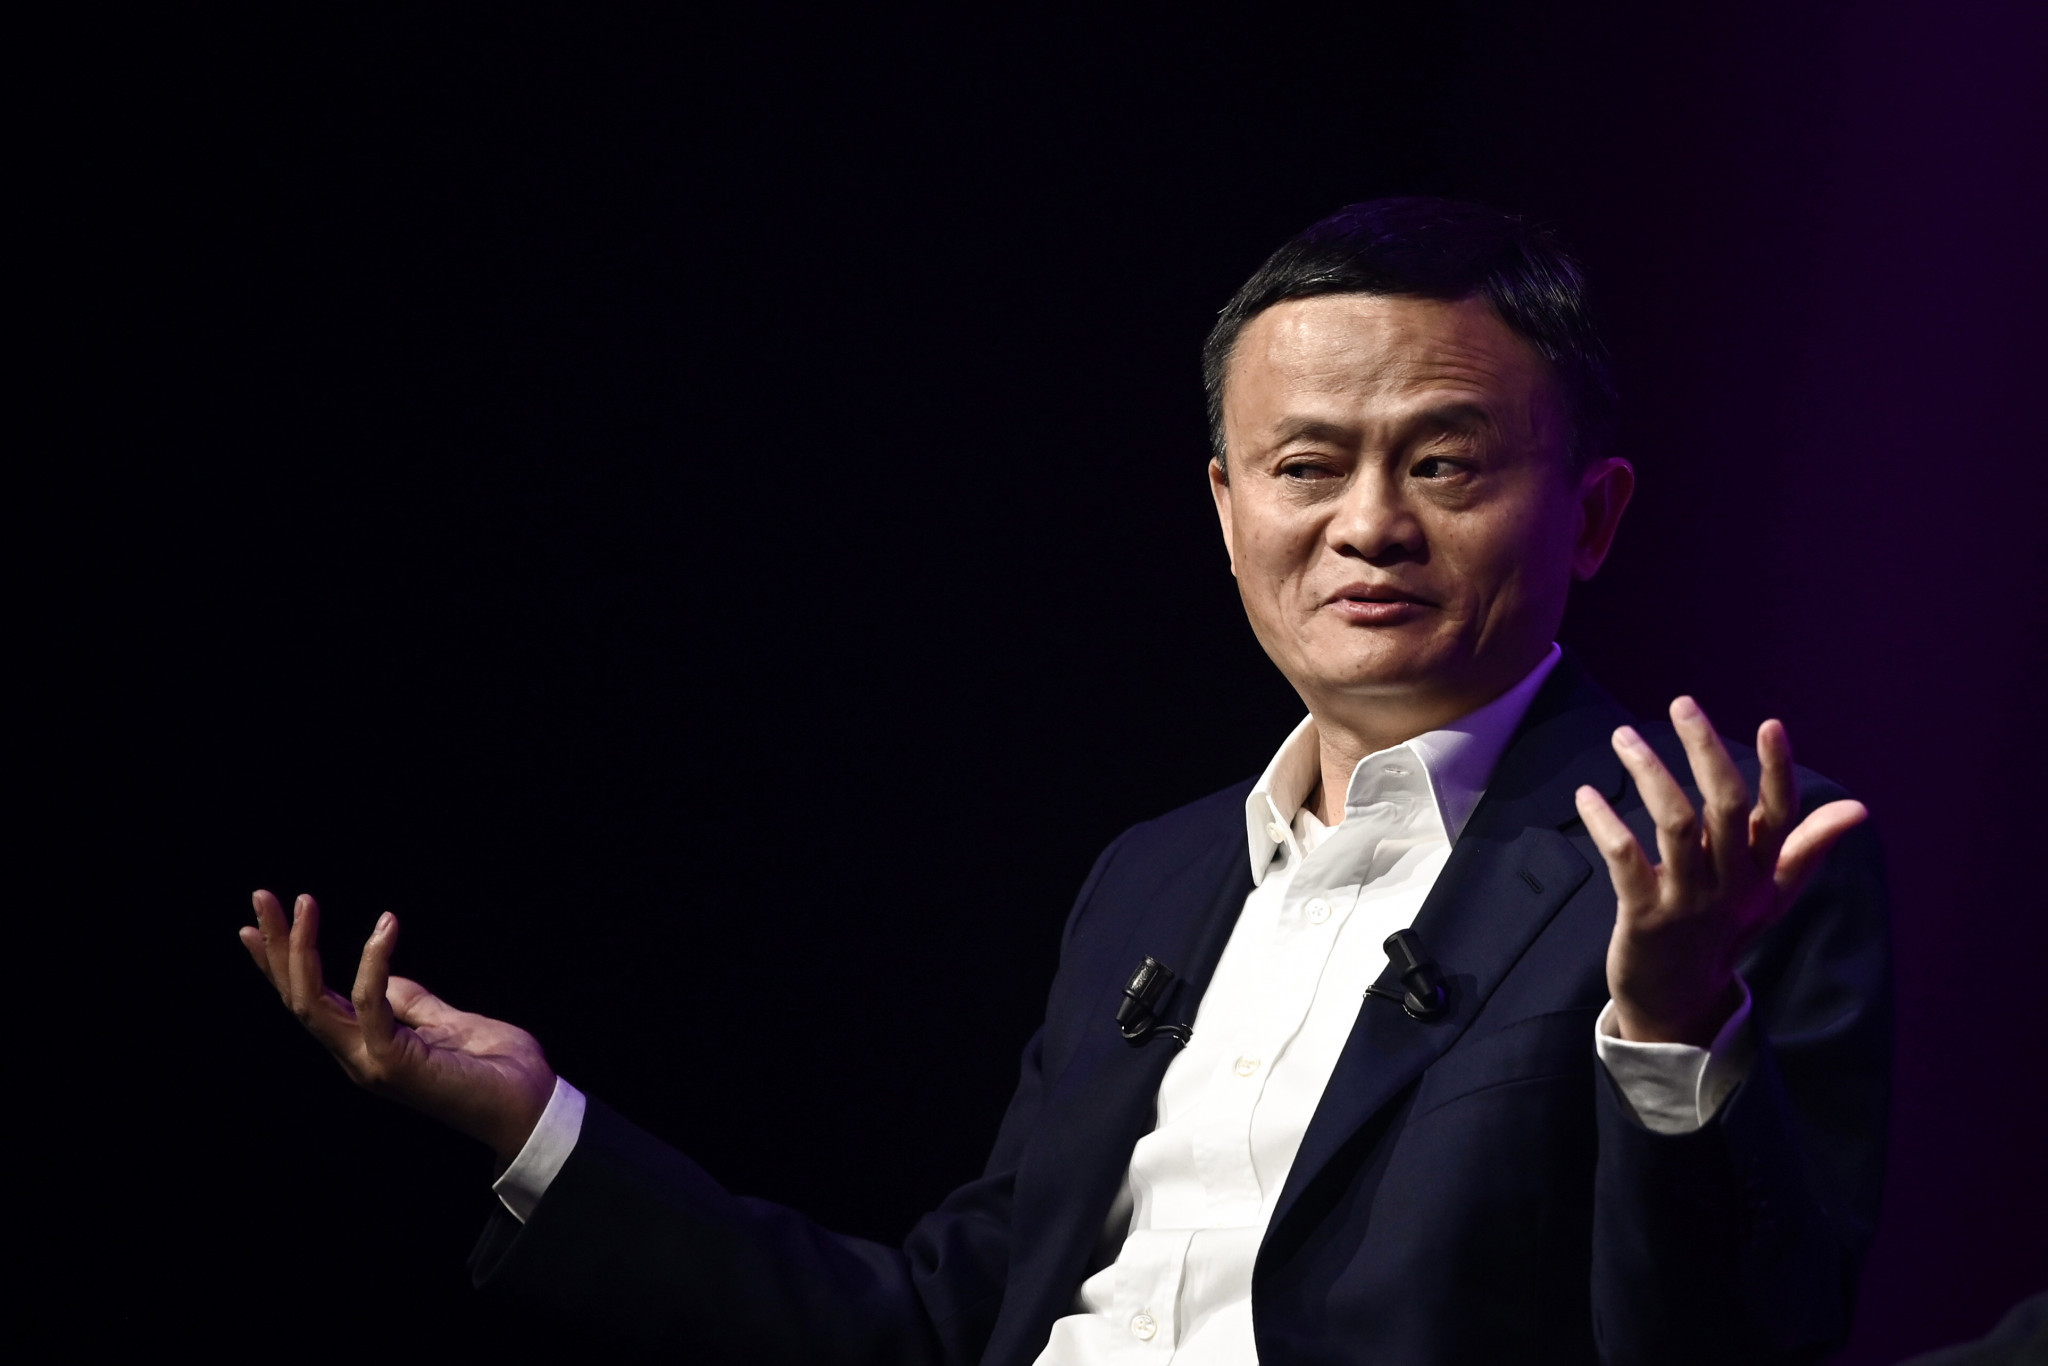 Ant Group, a cloud computing company founded by Jack Ma, was set to make capital markets history before the listing was unexpectedly suspended ©Getty Images